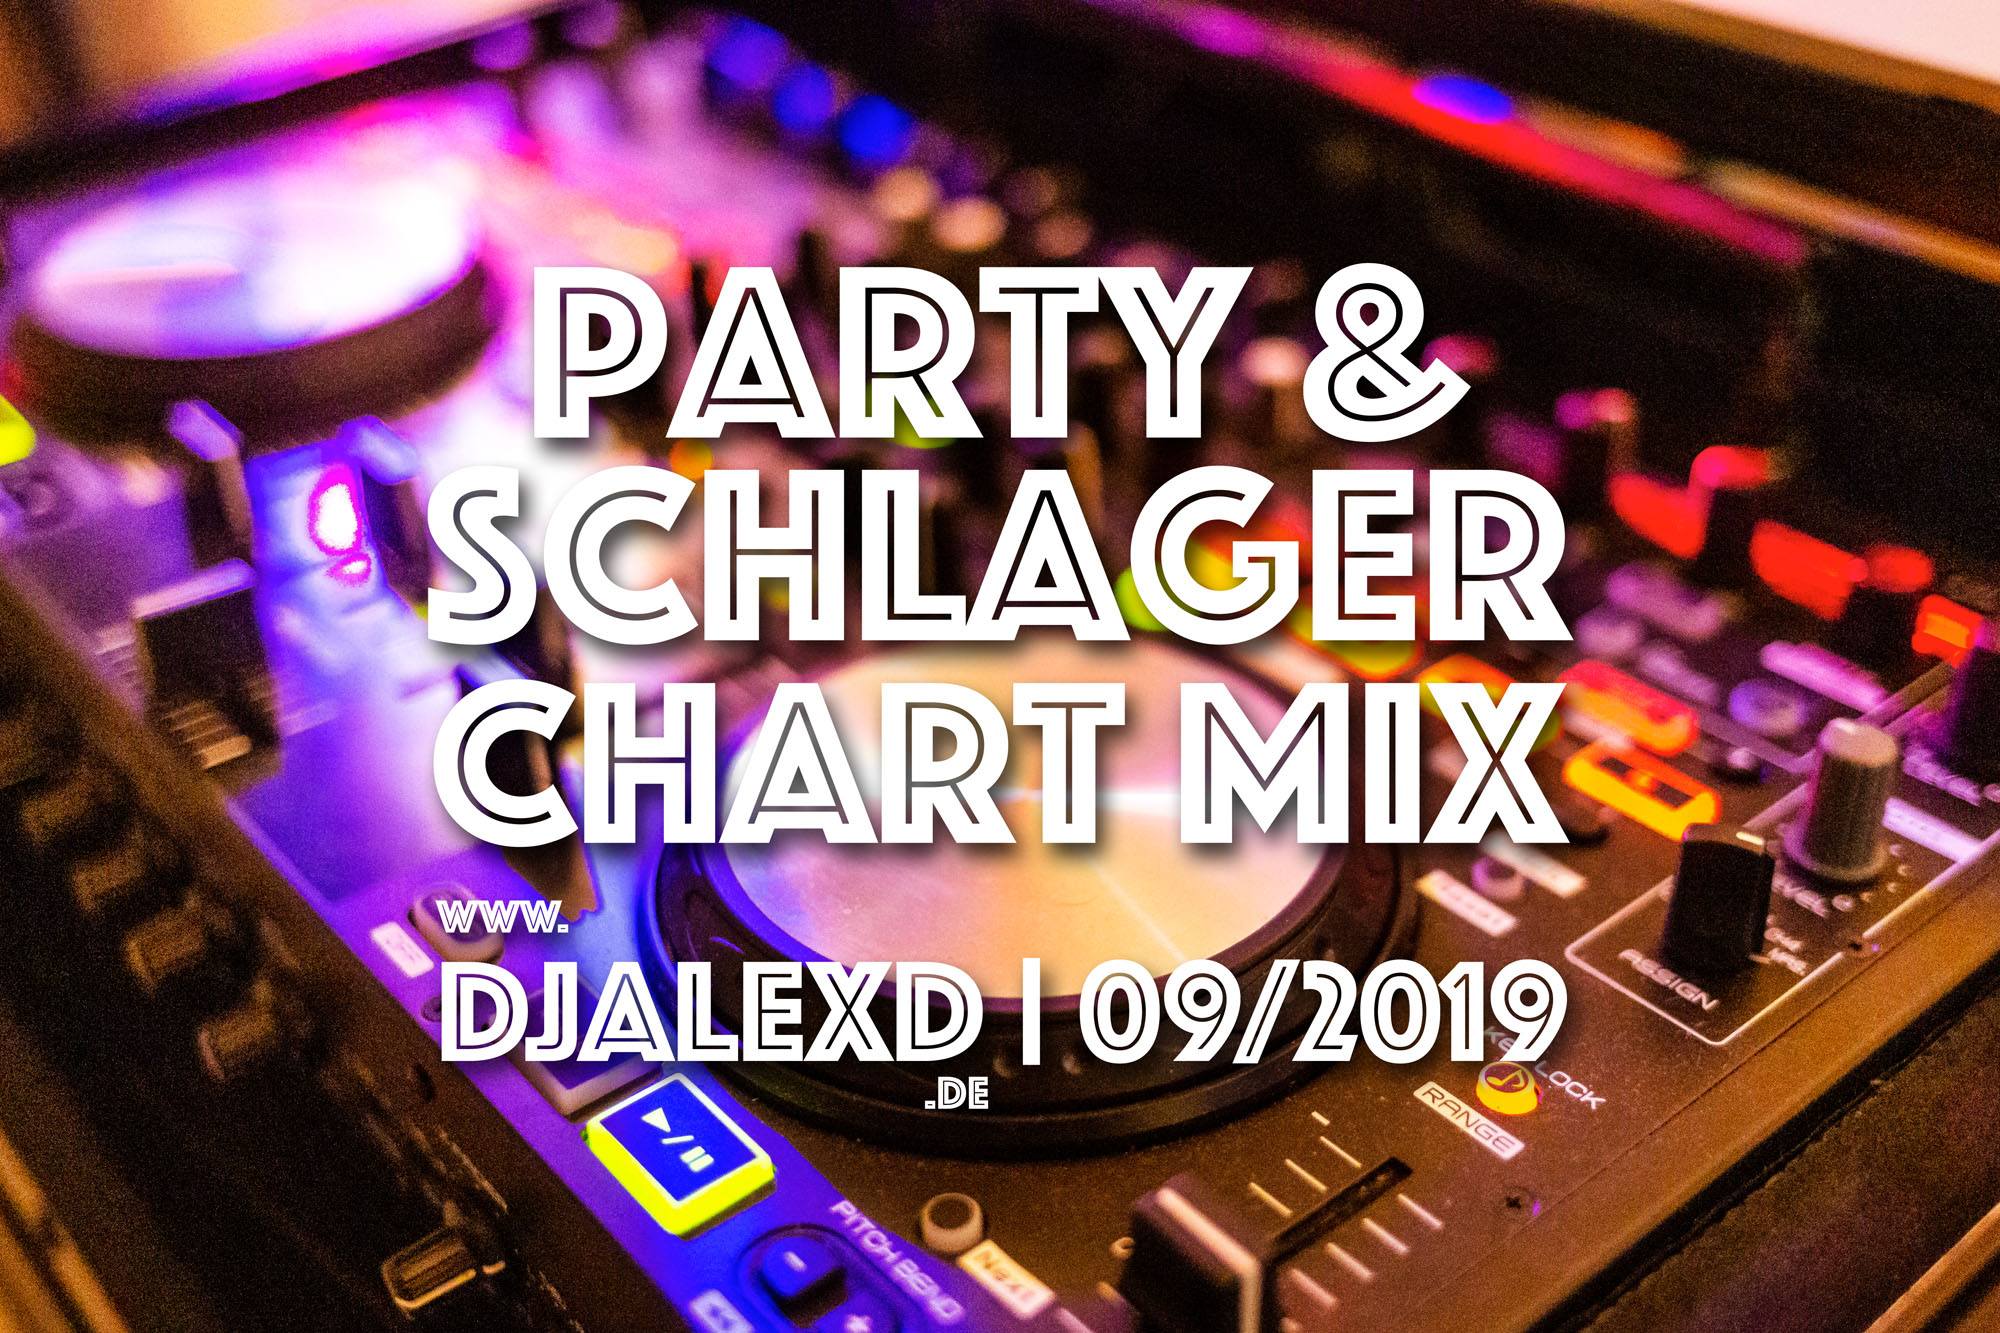 Party & Schlager Chart Mix 9/2019